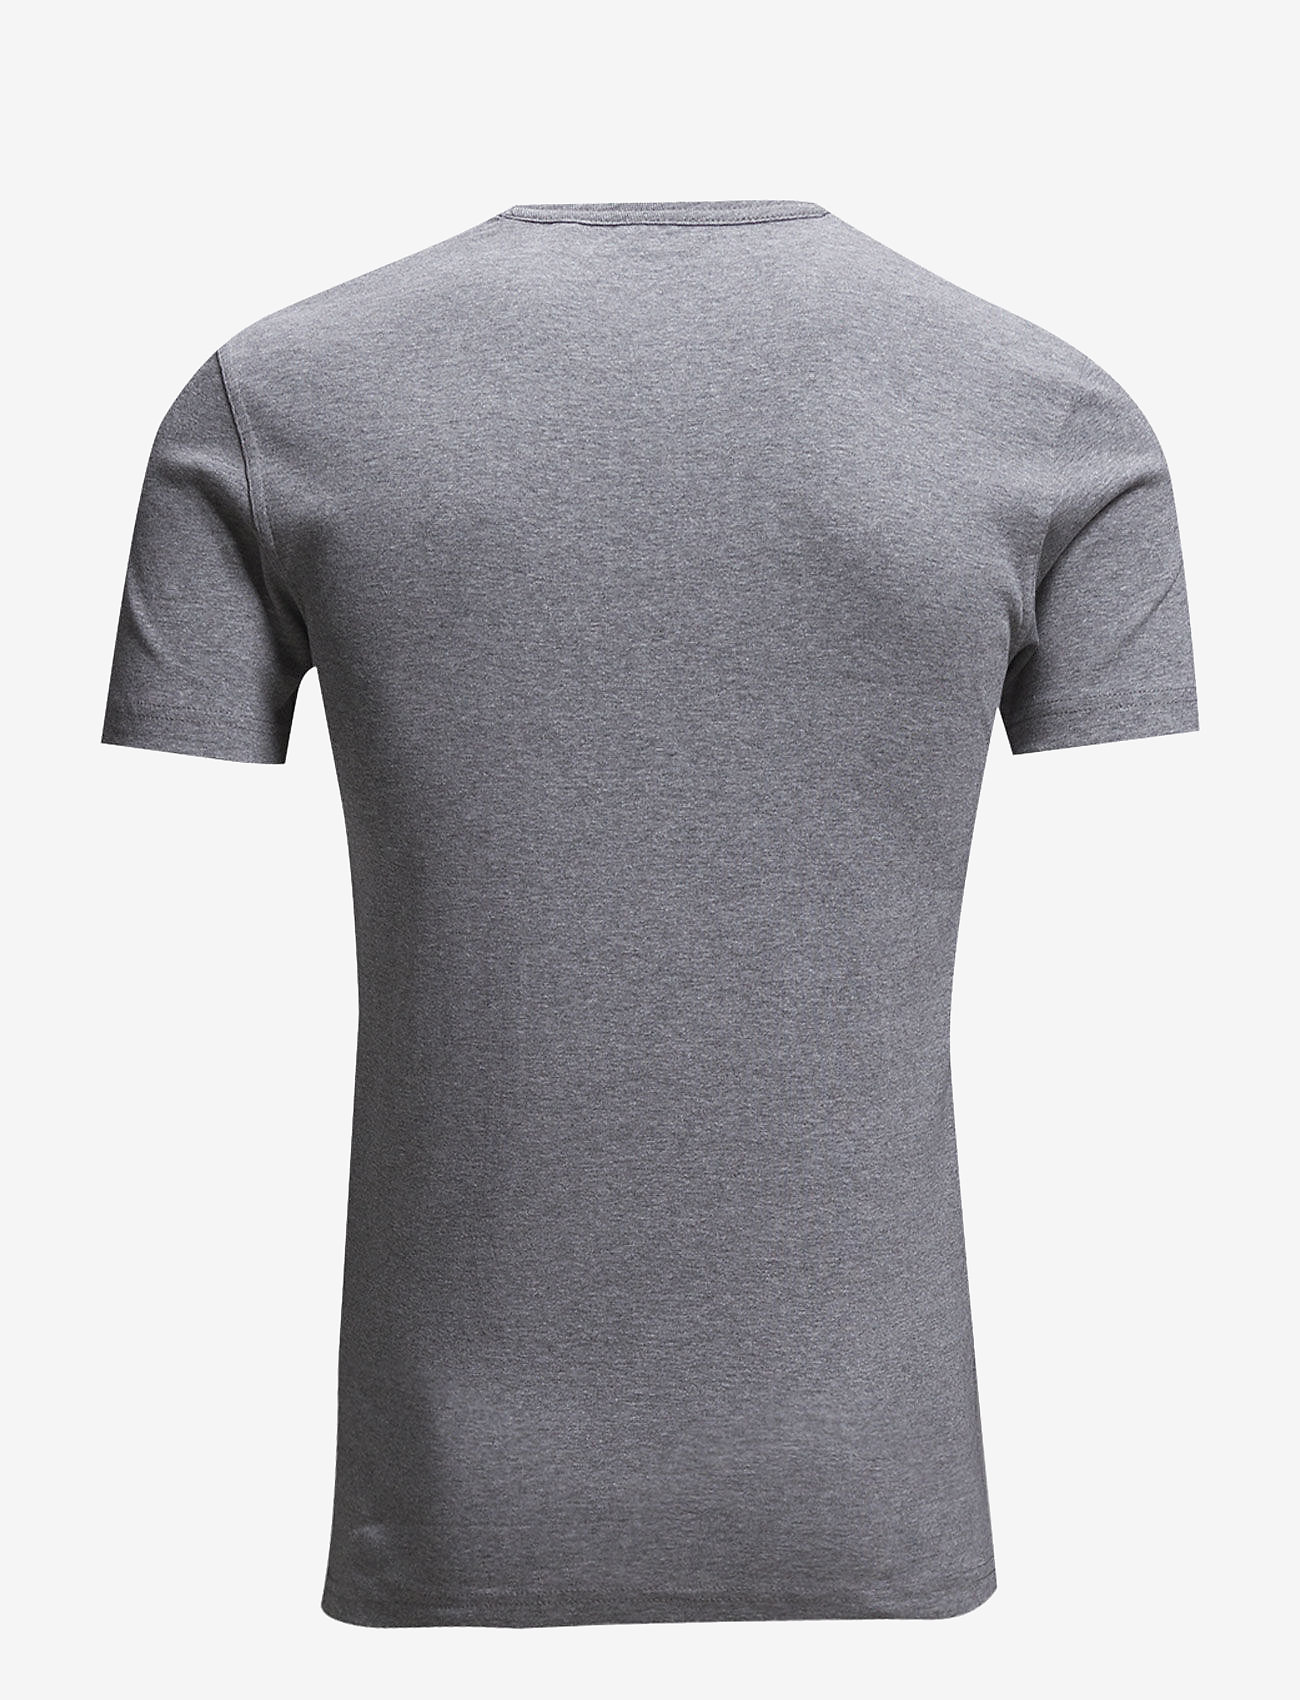 Lindbergh - Basic t-shirt S/S - short-sleeved t-shirts - grey mel - 1